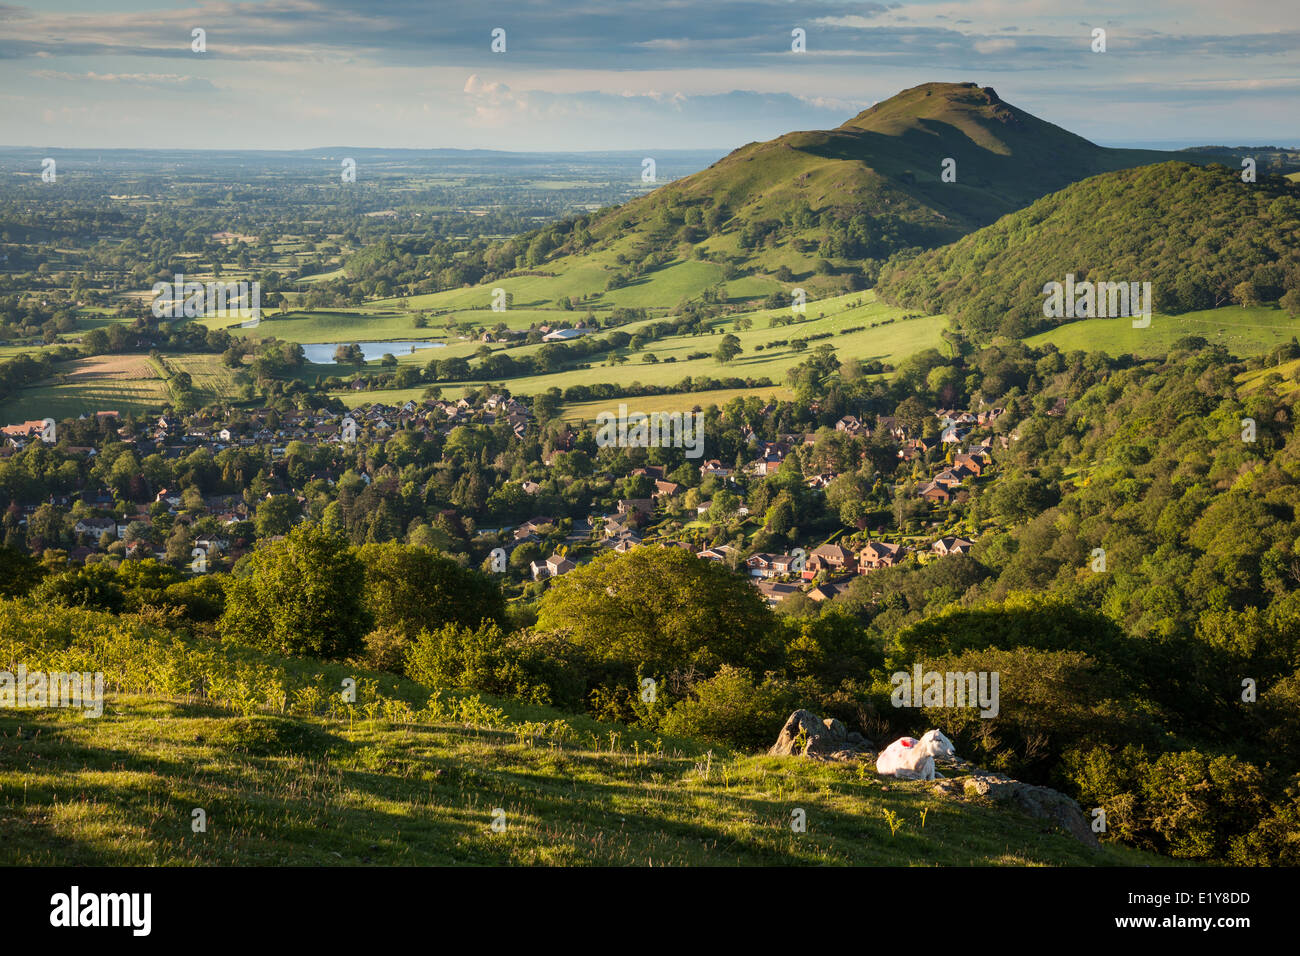 Caer Caradoc and Helmeth Hill in the evening sunshine, as seen from Ragleth Hill. Church Stretton, Shropshire - Stock Image